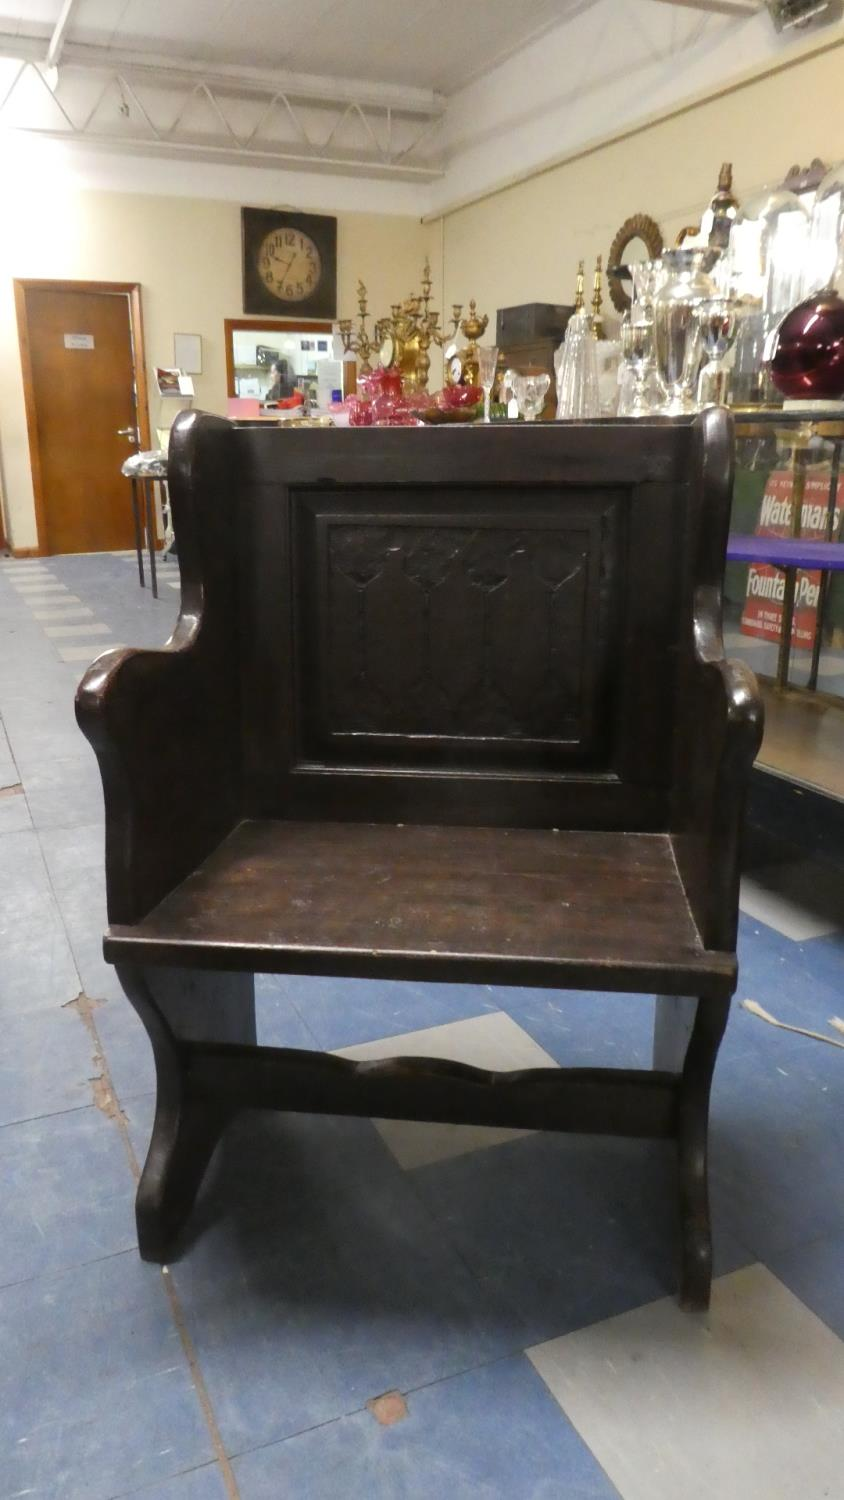 Lot 78 - A Late 19th Century Stained Oak Single Pew with Carved Back Panel, 61cm high